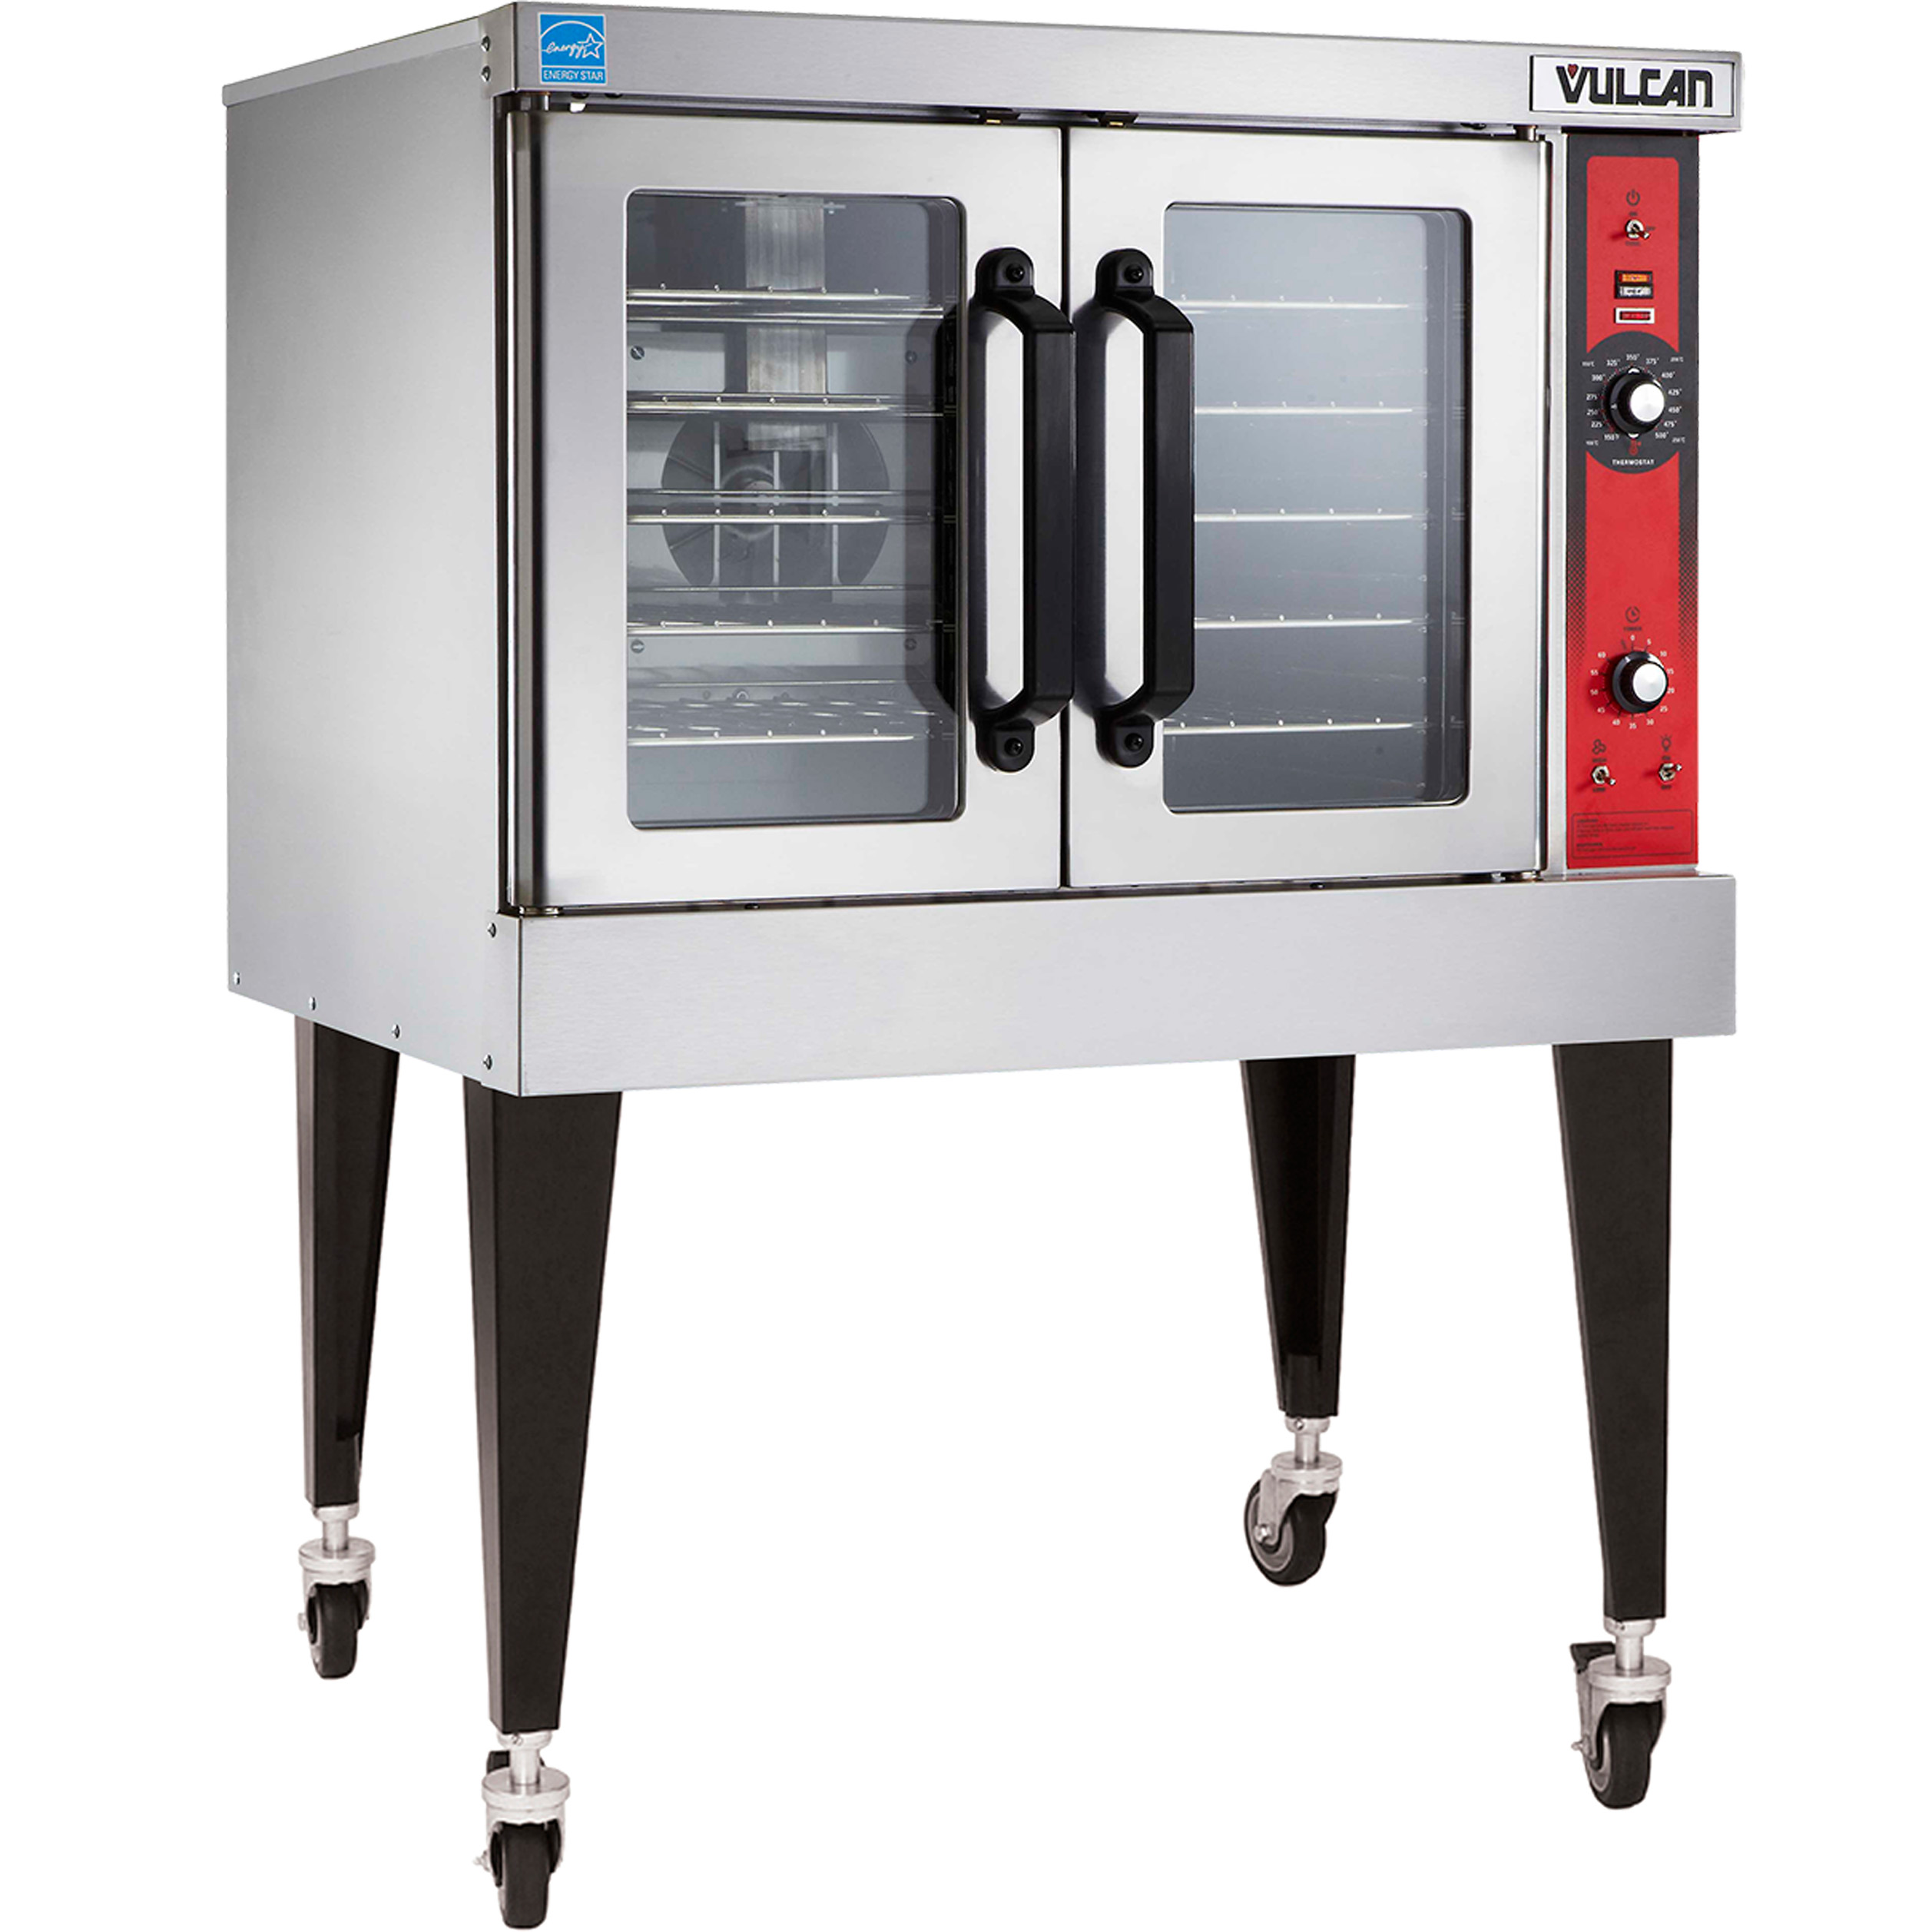 Vulcan VC6GC convection oven, gas